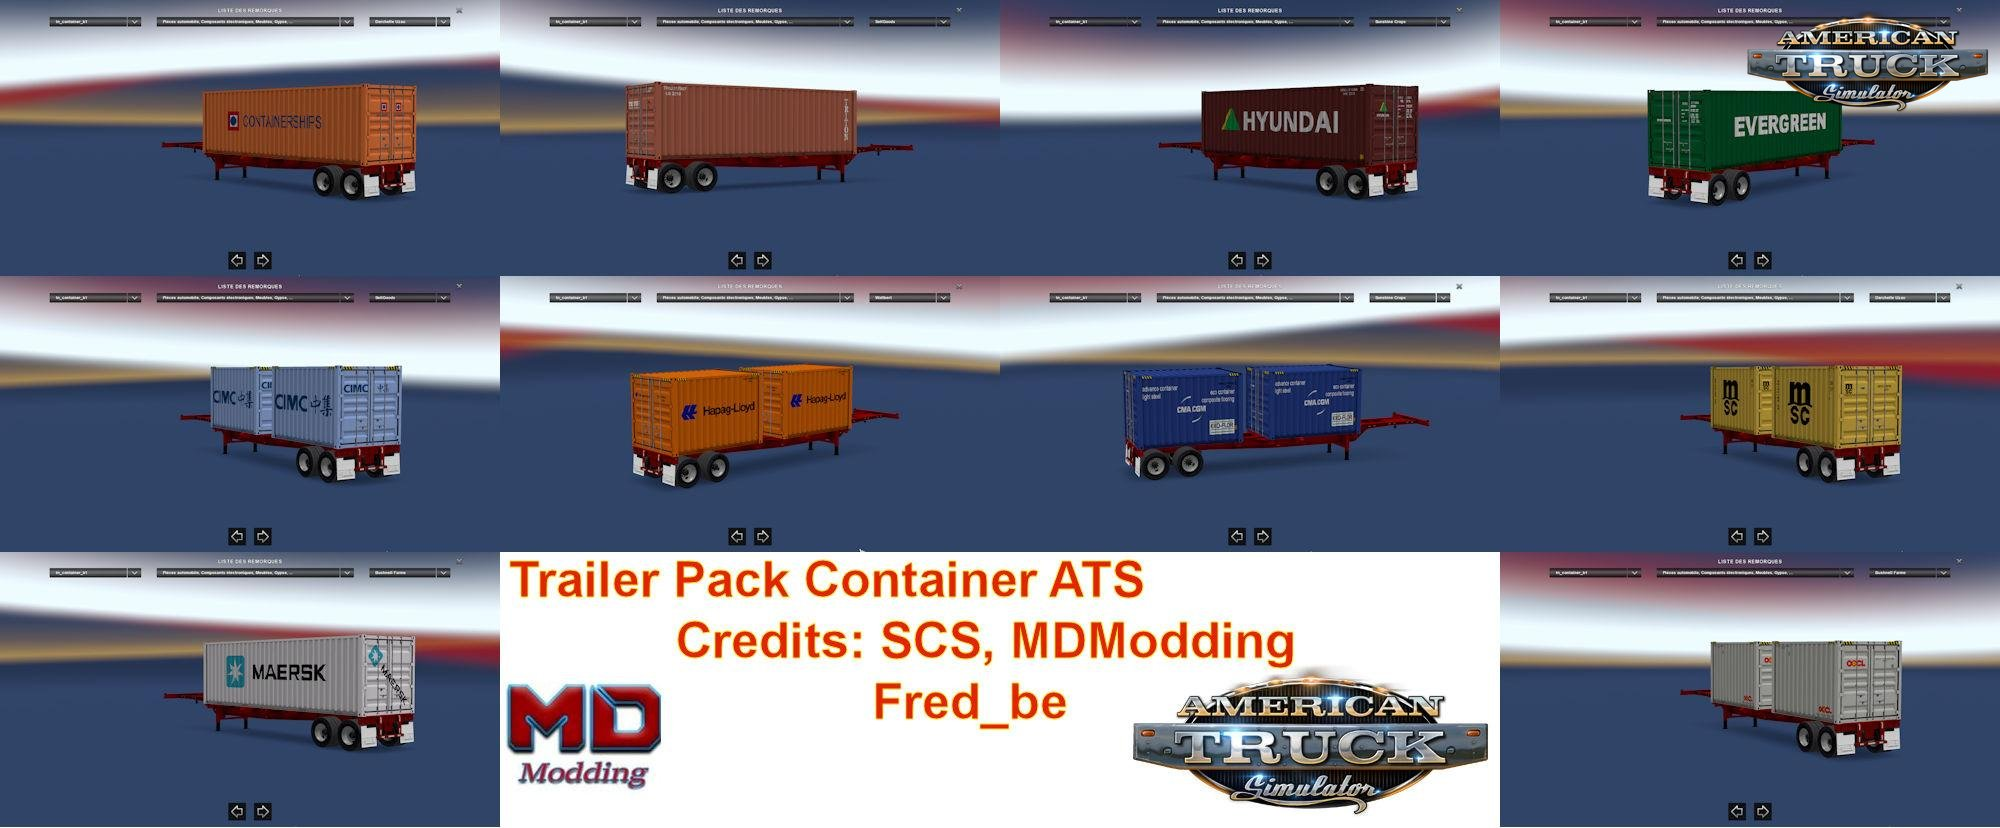 Trailer Pack Container v1.29 for Ats